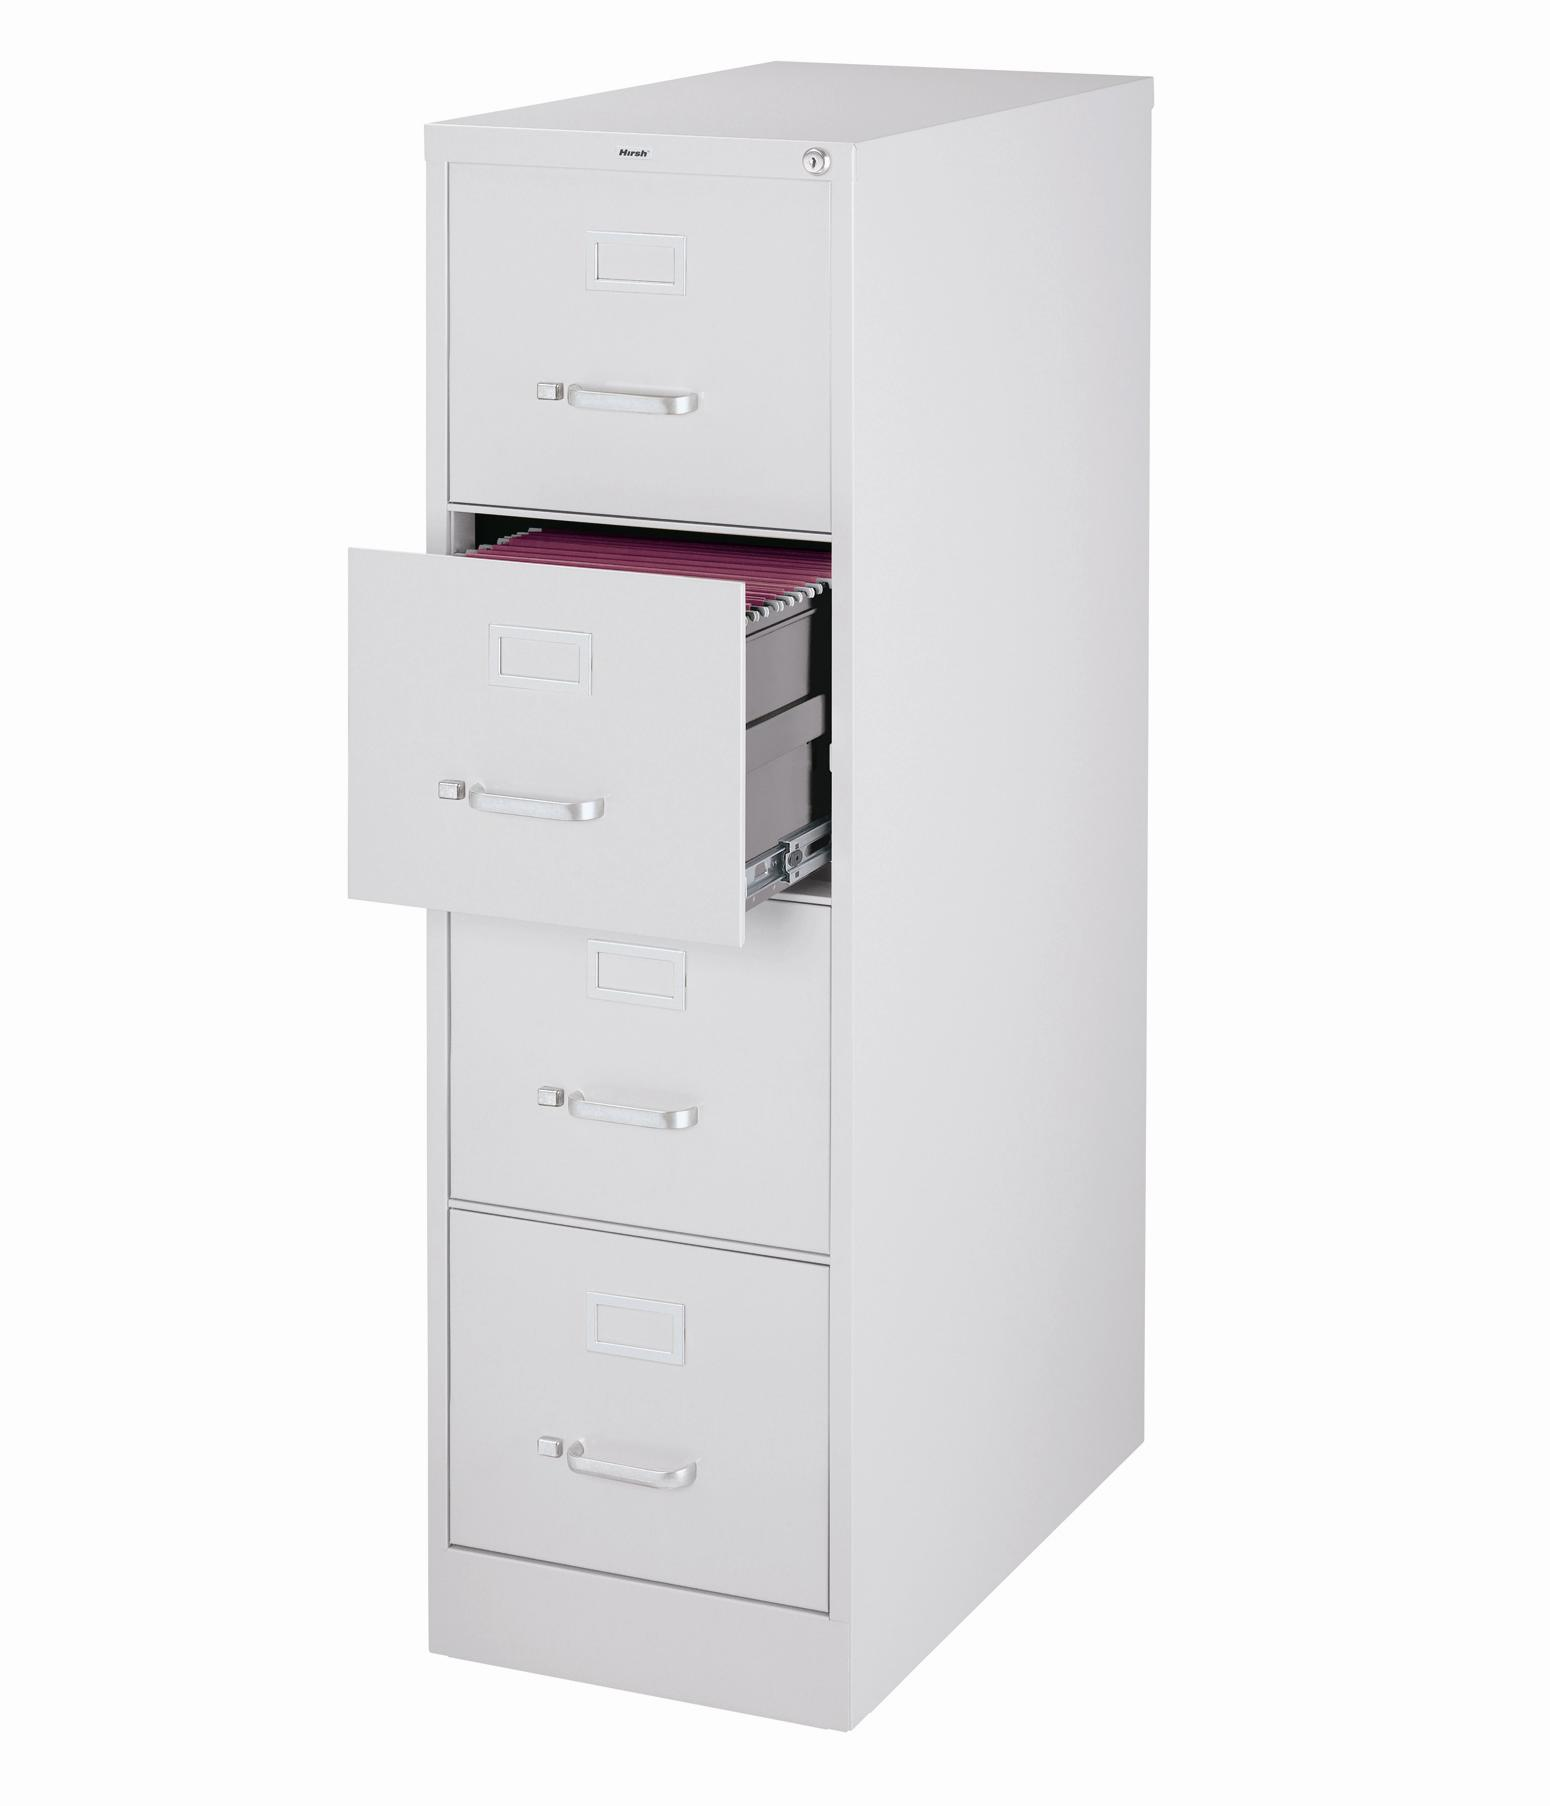 3000 Series 26.5 inch Deep 4 Drawer, Letter Size Vertical File